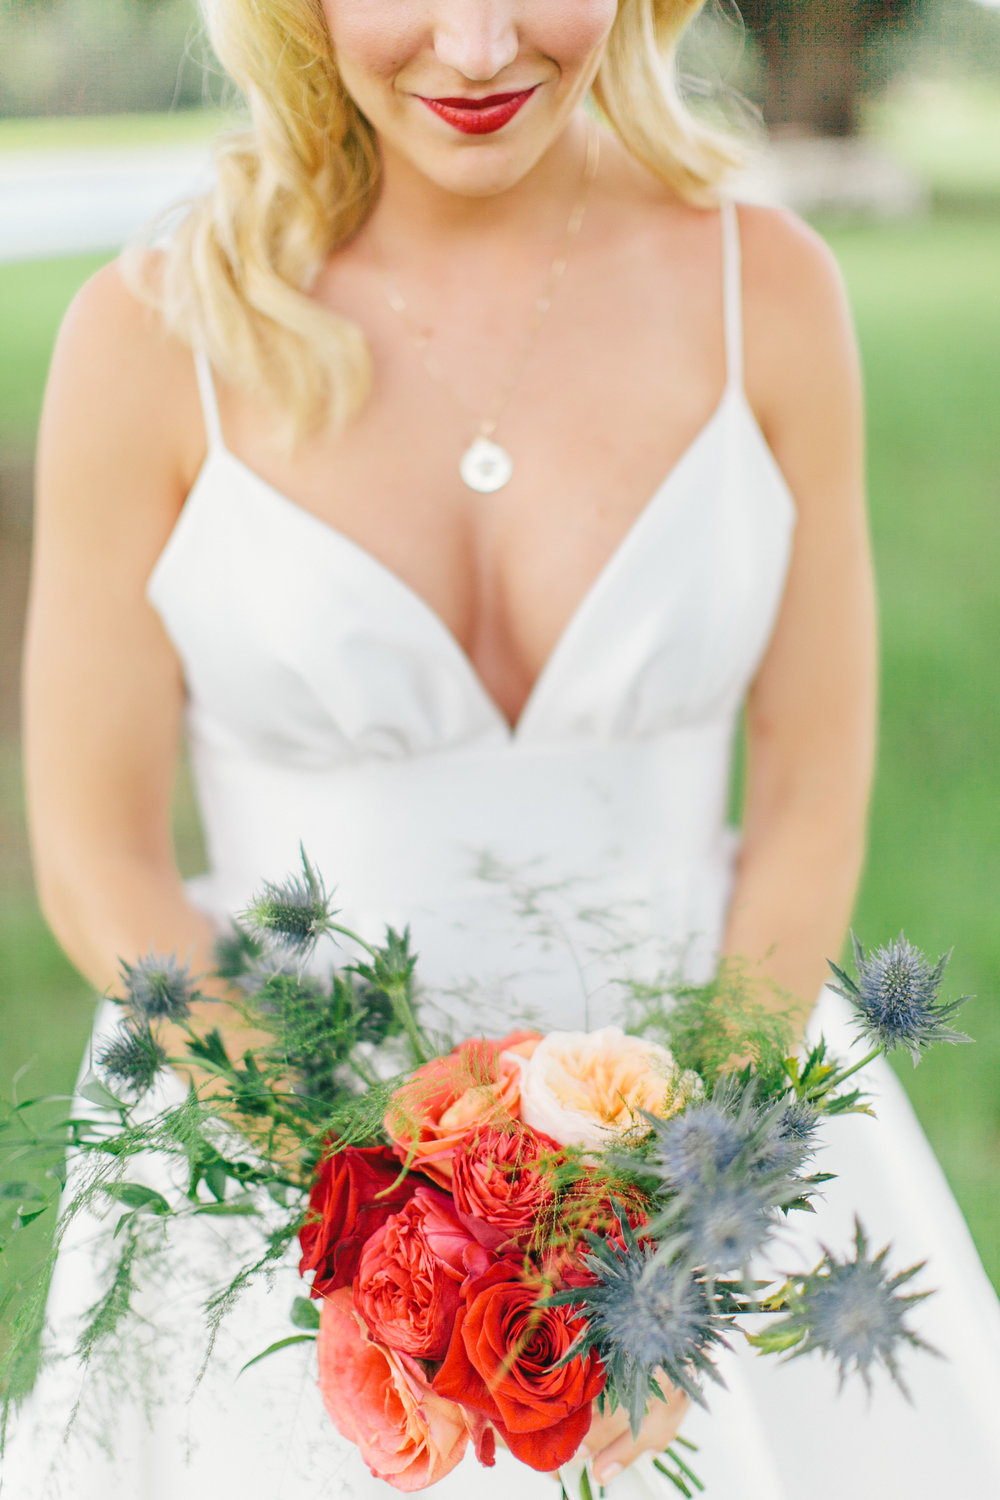 red, white and blue all-american military wedding inspiration in charleston at wingate plantation by scarlet plan _ design for revolution wedding tours (129).jpg